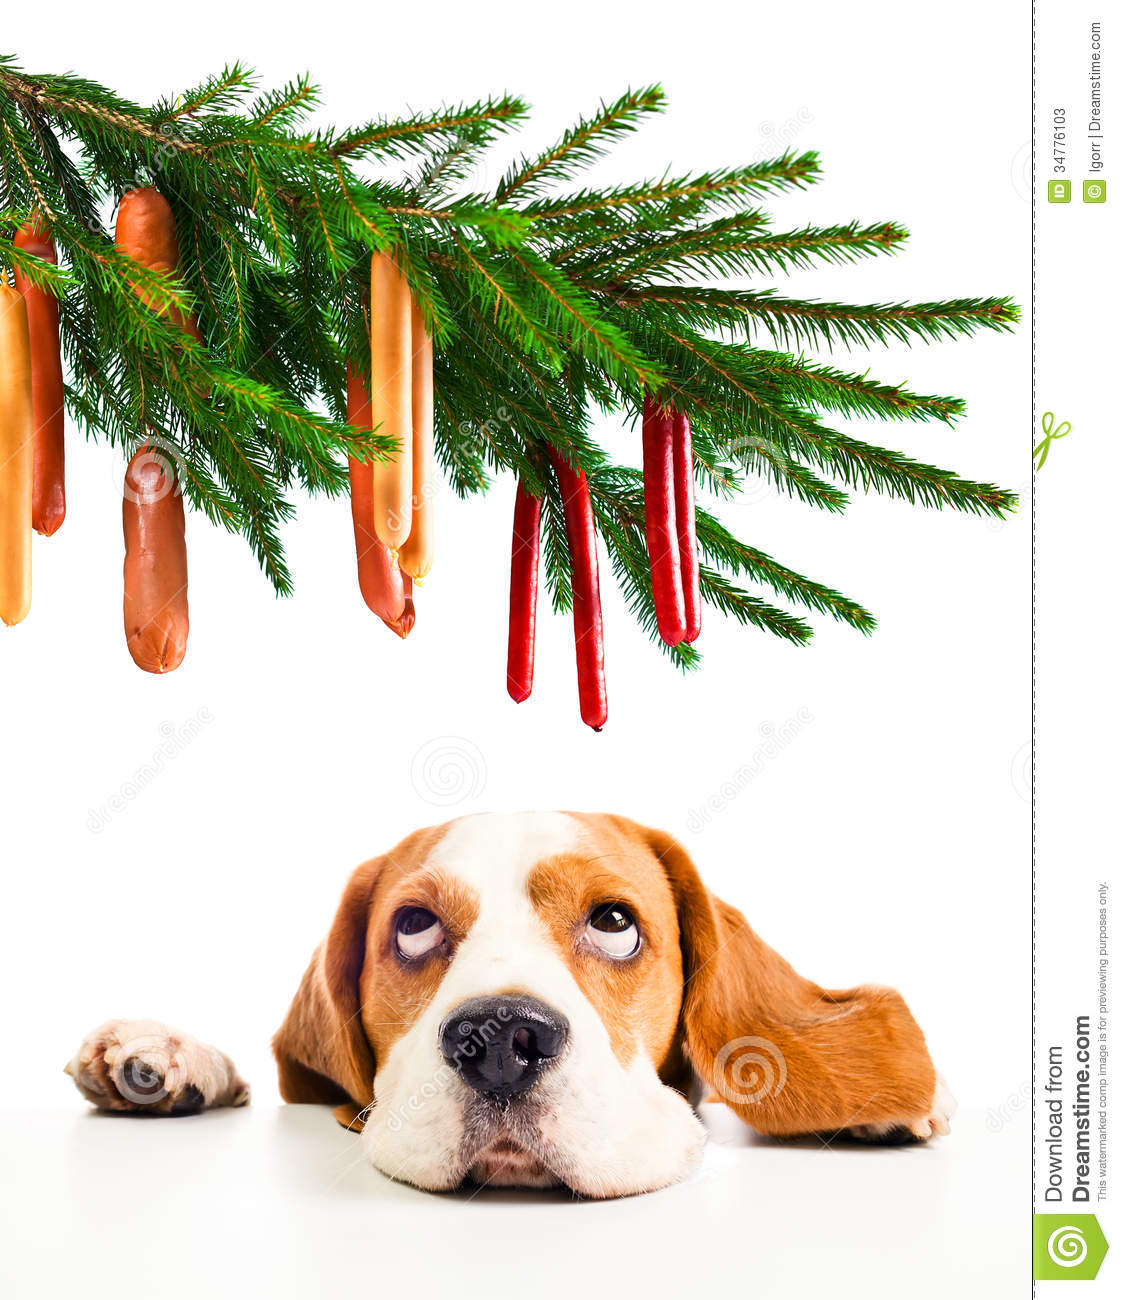 Beagle And Its Christmas Dreams Stock Image - Image of expression ...